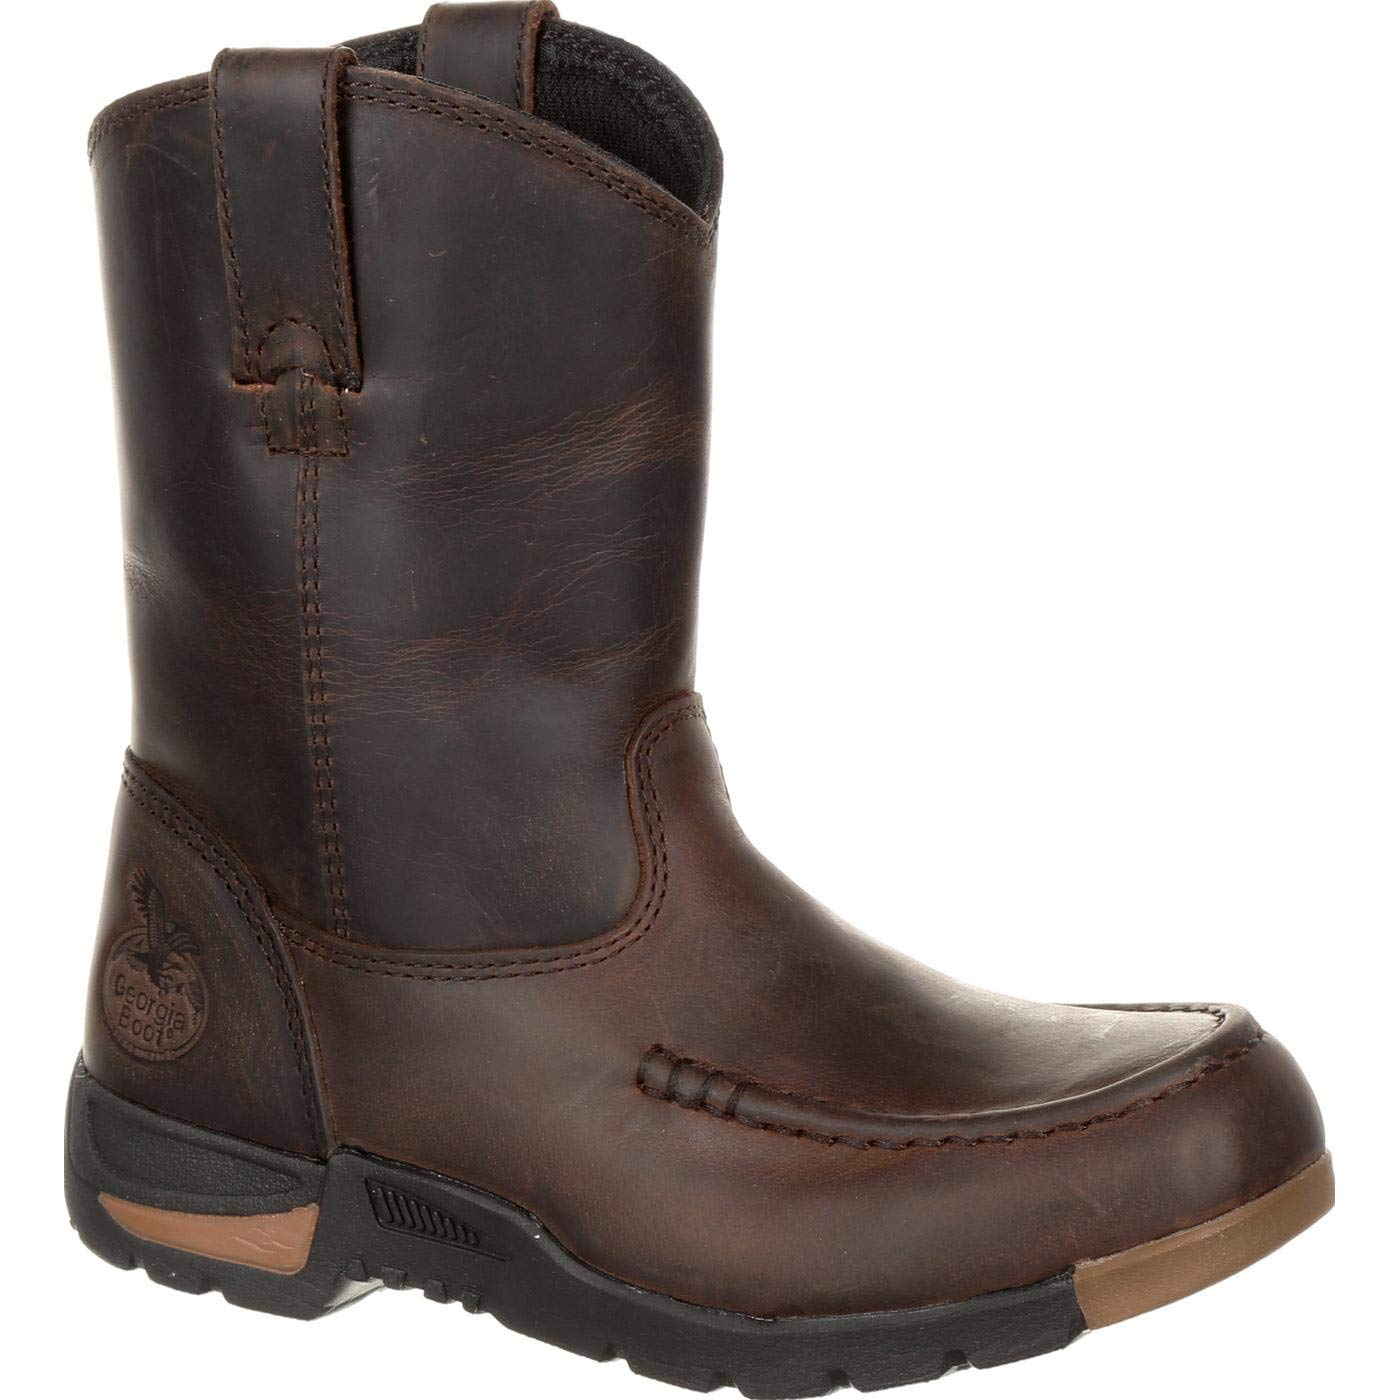 Georgia GB00232Y Youth Athens Big Pull-On Boot, Brown - 7 D(M) US